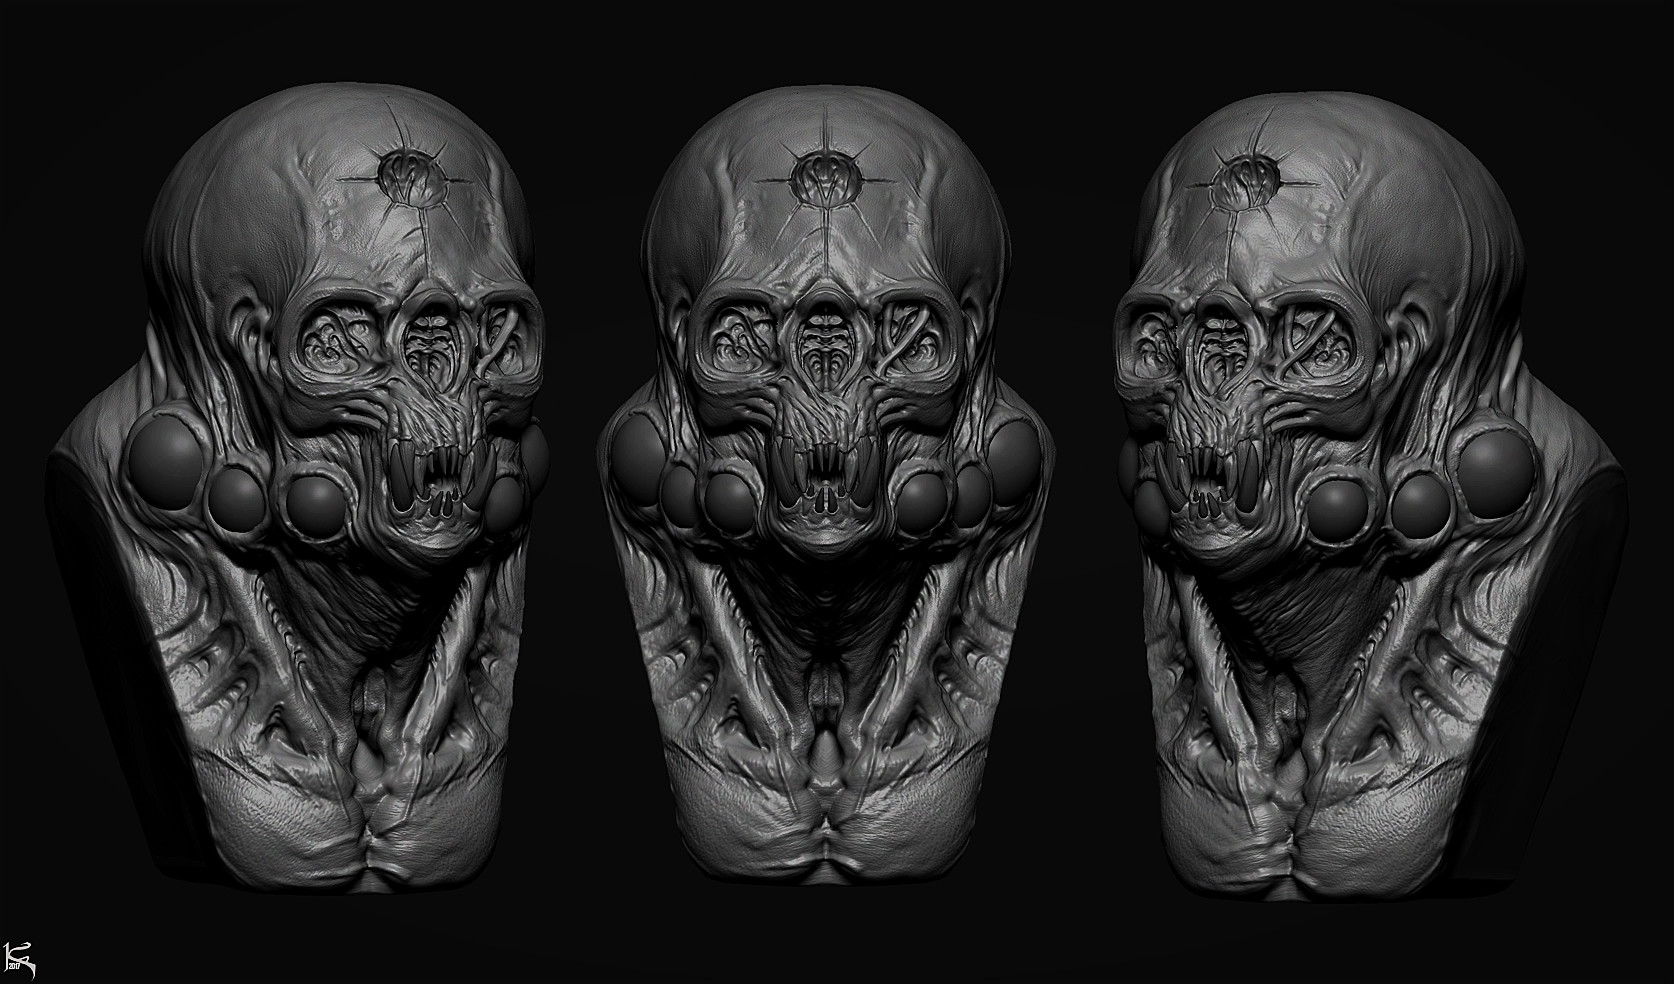 kenny-carmody-creature22-zbrush-screengrab-1001.jpg